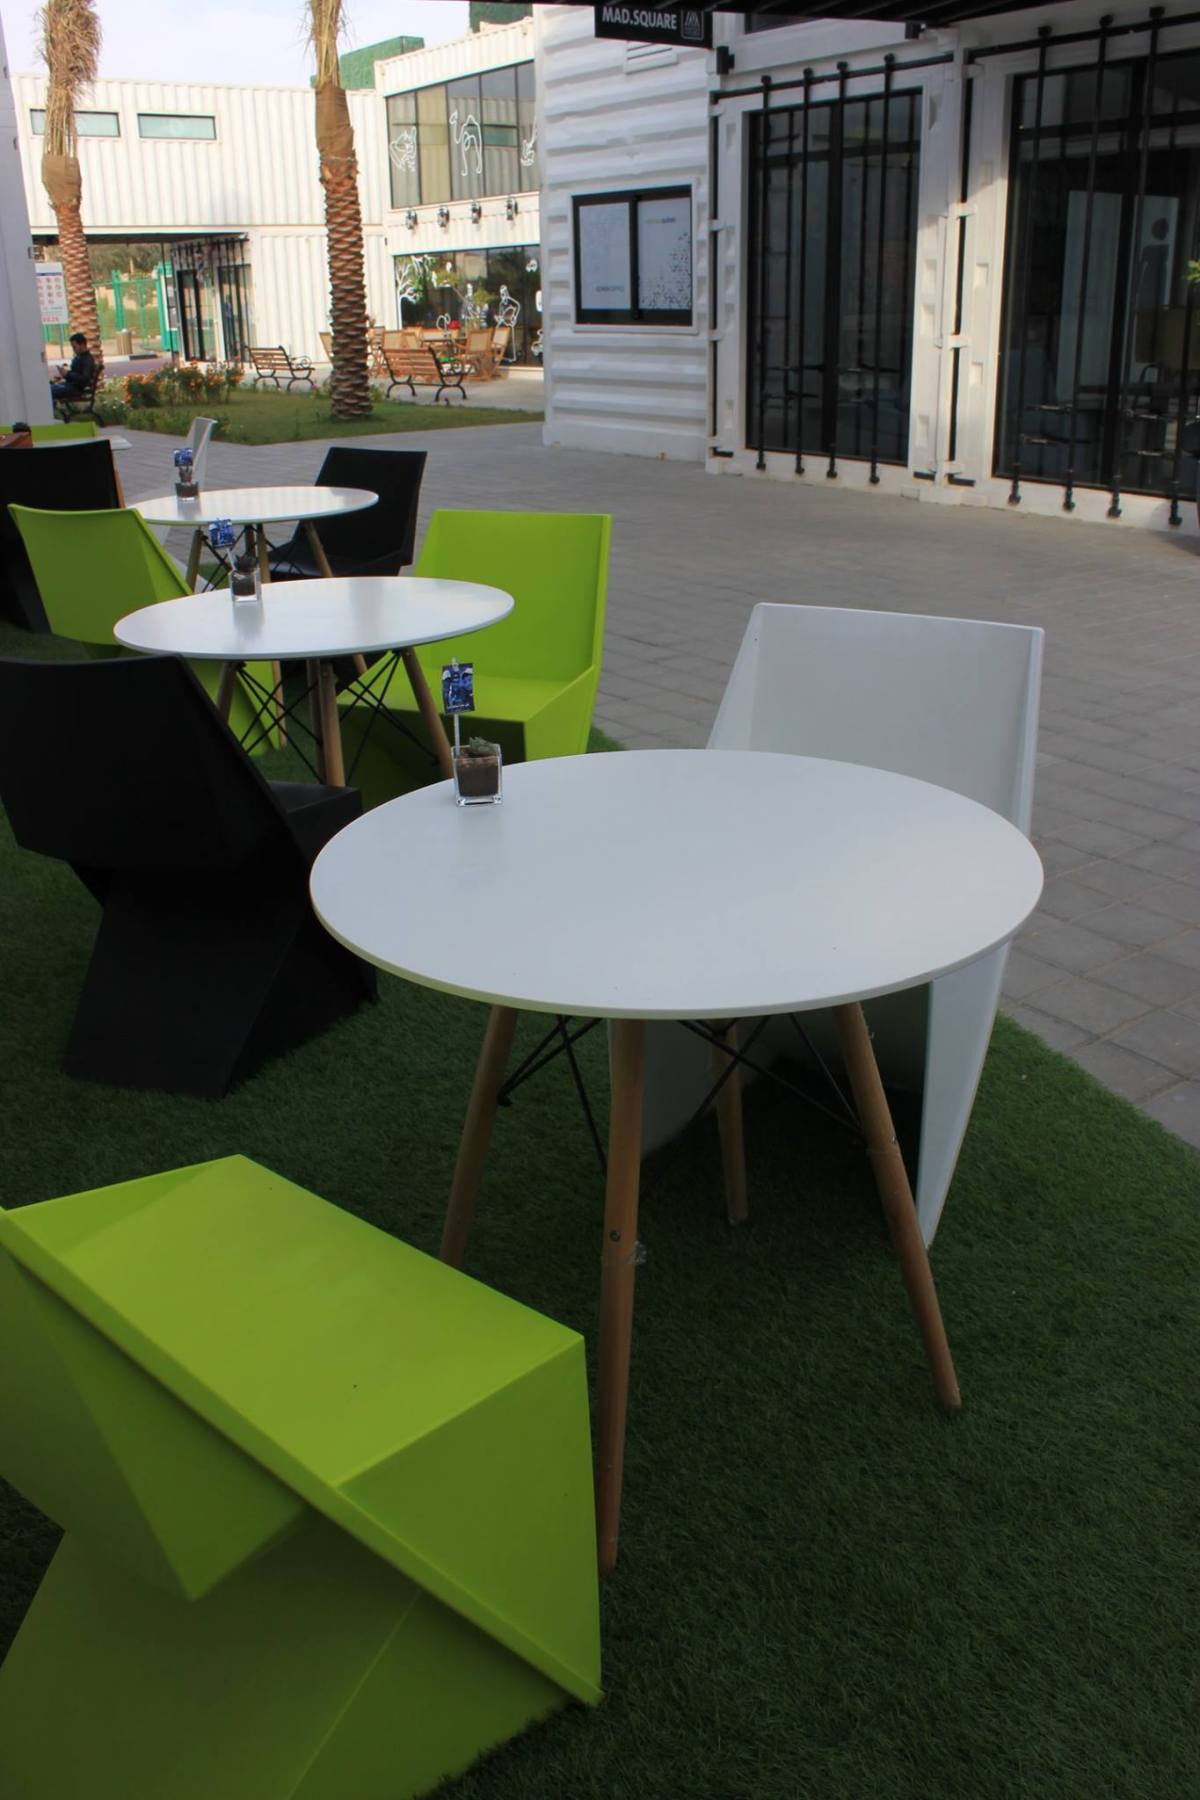 TS_OutdoorSeating